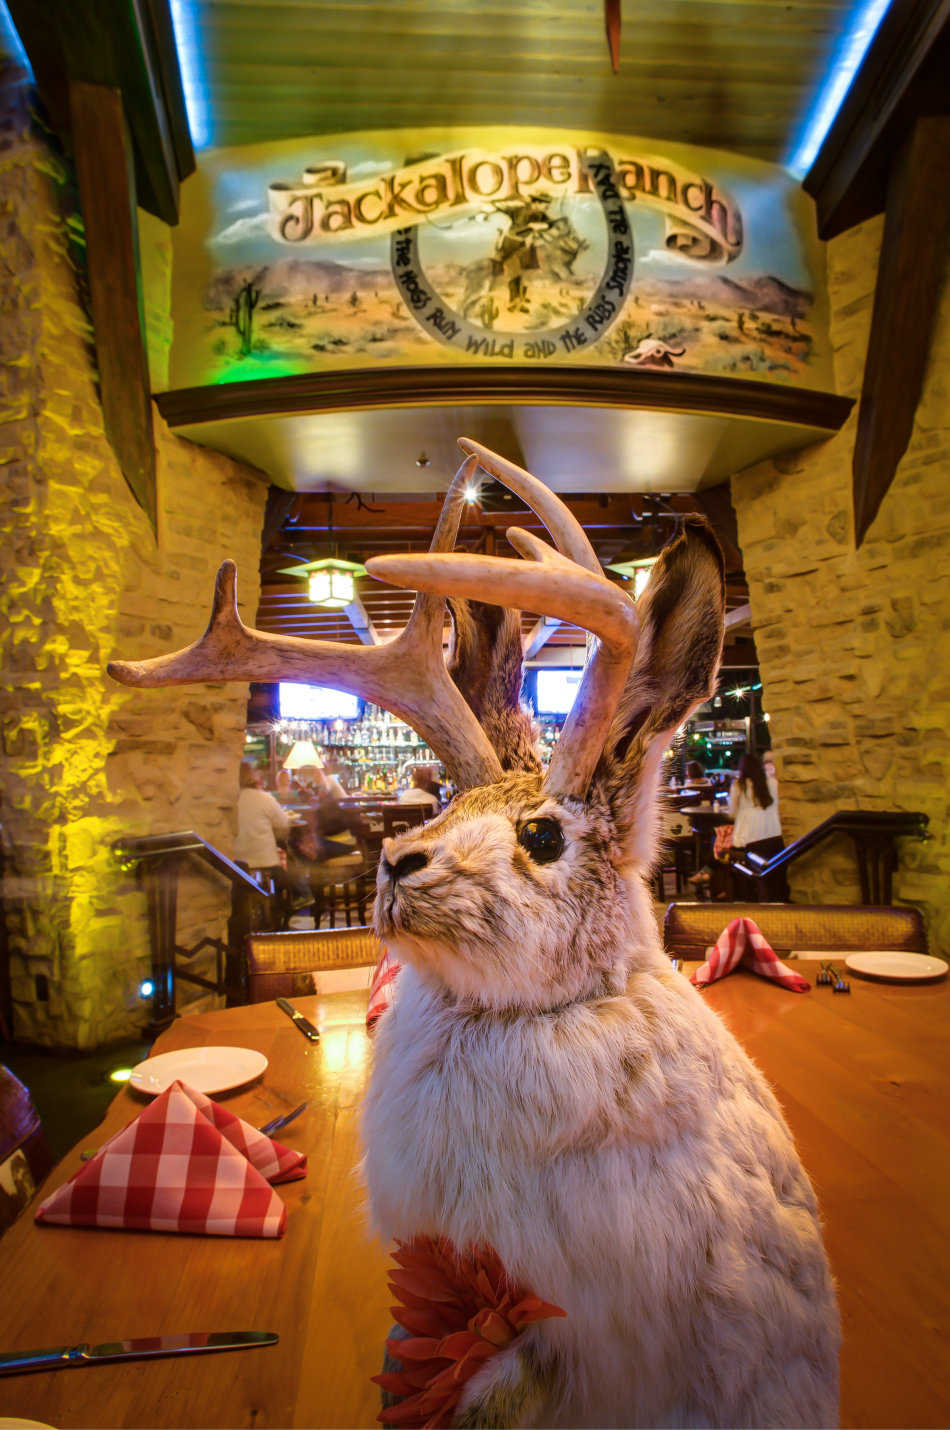 A Stuffed Jackalope